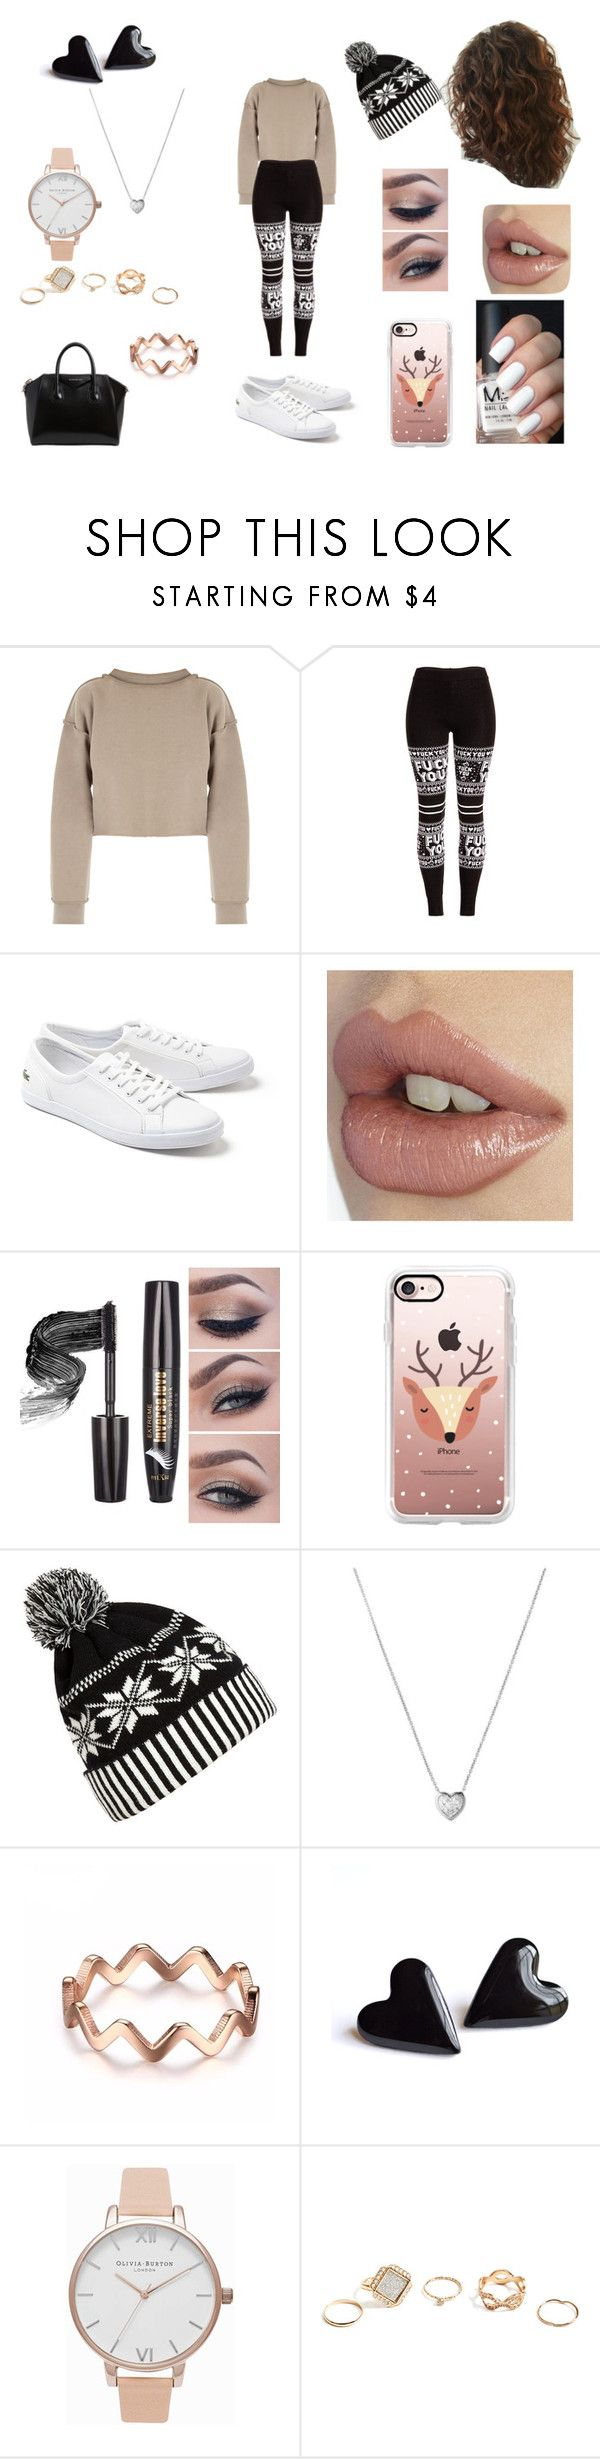 """""""Last Minute Christmas Shopping"""" by roxy-crushlings ❤ liked on Polyvore featuring My Mum Made It, Lacoste, Casetify, WithChic, Links of London, Olivia Burton, GUESS and Givenchy"""